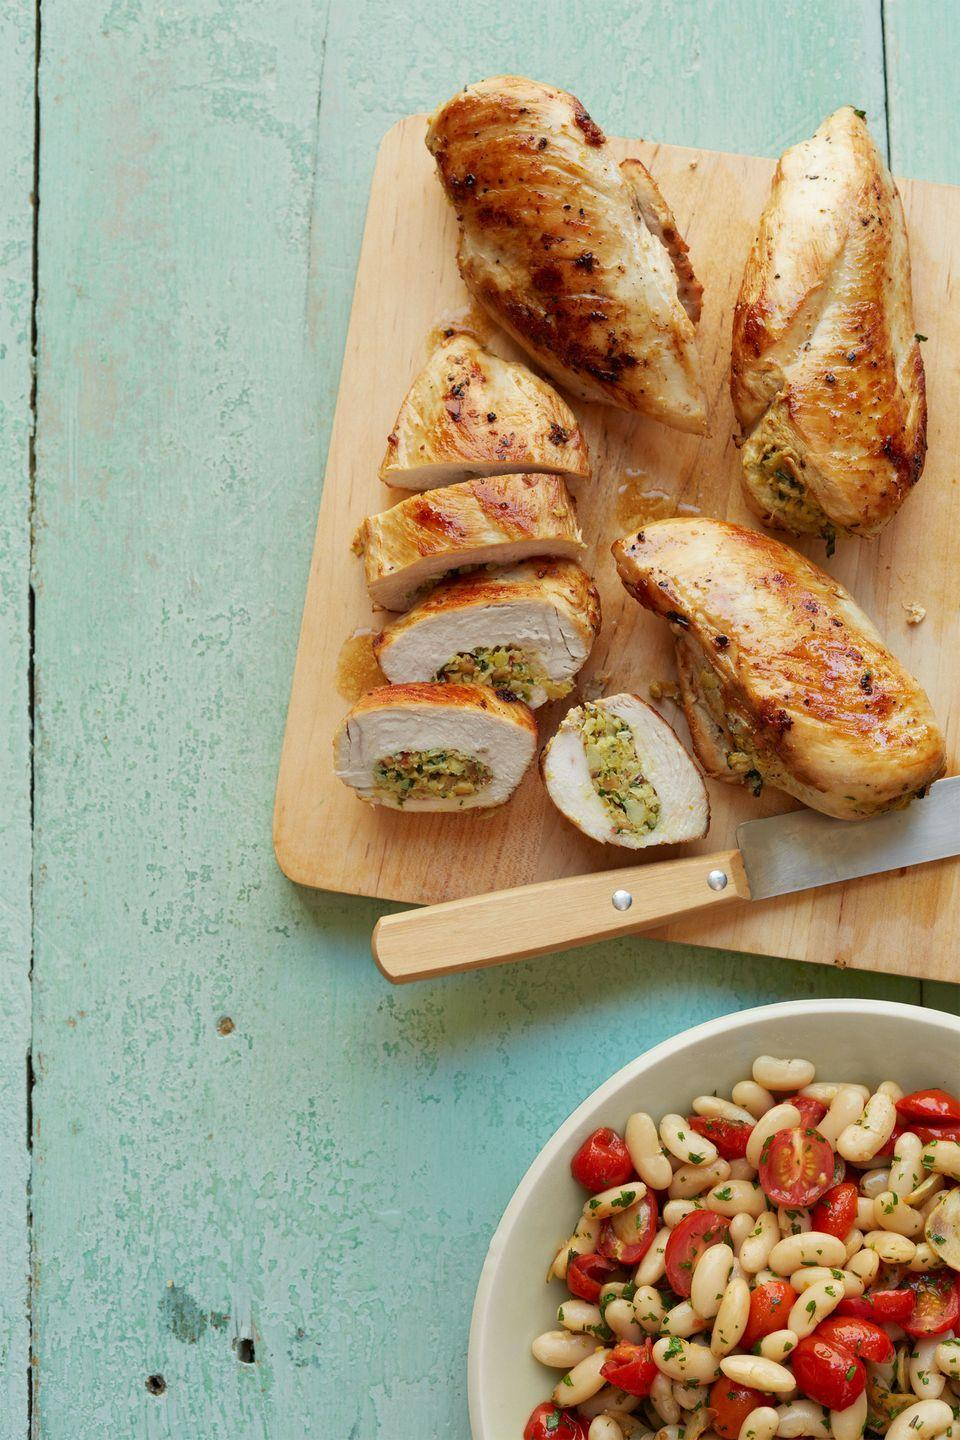 """<p>One of the best parts of this recipe is that the stuffing helps keep the breasts from drying out.</p><p><strong><a href=""""https://www.countryliving.com/food-drinks/recipes/a34231/artichoke-almond-stuffed-chicken-breasts-recipe-wdy0114/"""" rel=""""nofollow noopener"""" target=""""_blank"""" data-ylk=""""slk:Get the recipe"""" class=""""link rapid-noclick-resp"""">Get the recipe</a>.</strong></p><p><strong><a class=""""link rapid-noclick-resp"""" href=""""https://www.amazon.com/AVACRAFT-Stainless-Frying-Tri-Ply-Ergonomic/dp/B07F6DG3N1/r?tag=syn-yahoo-20&ascsubtag=%5Bartid%7C10050.g.32969162%5Bsrc%7Cyahoo-us"""" rel=""""nofollow noopener"""" target=""""_blank"""" data-ylk=""""slk:SHOP SKILLETS"""">SHOP SKILLETS</a><br></strong></p>"""